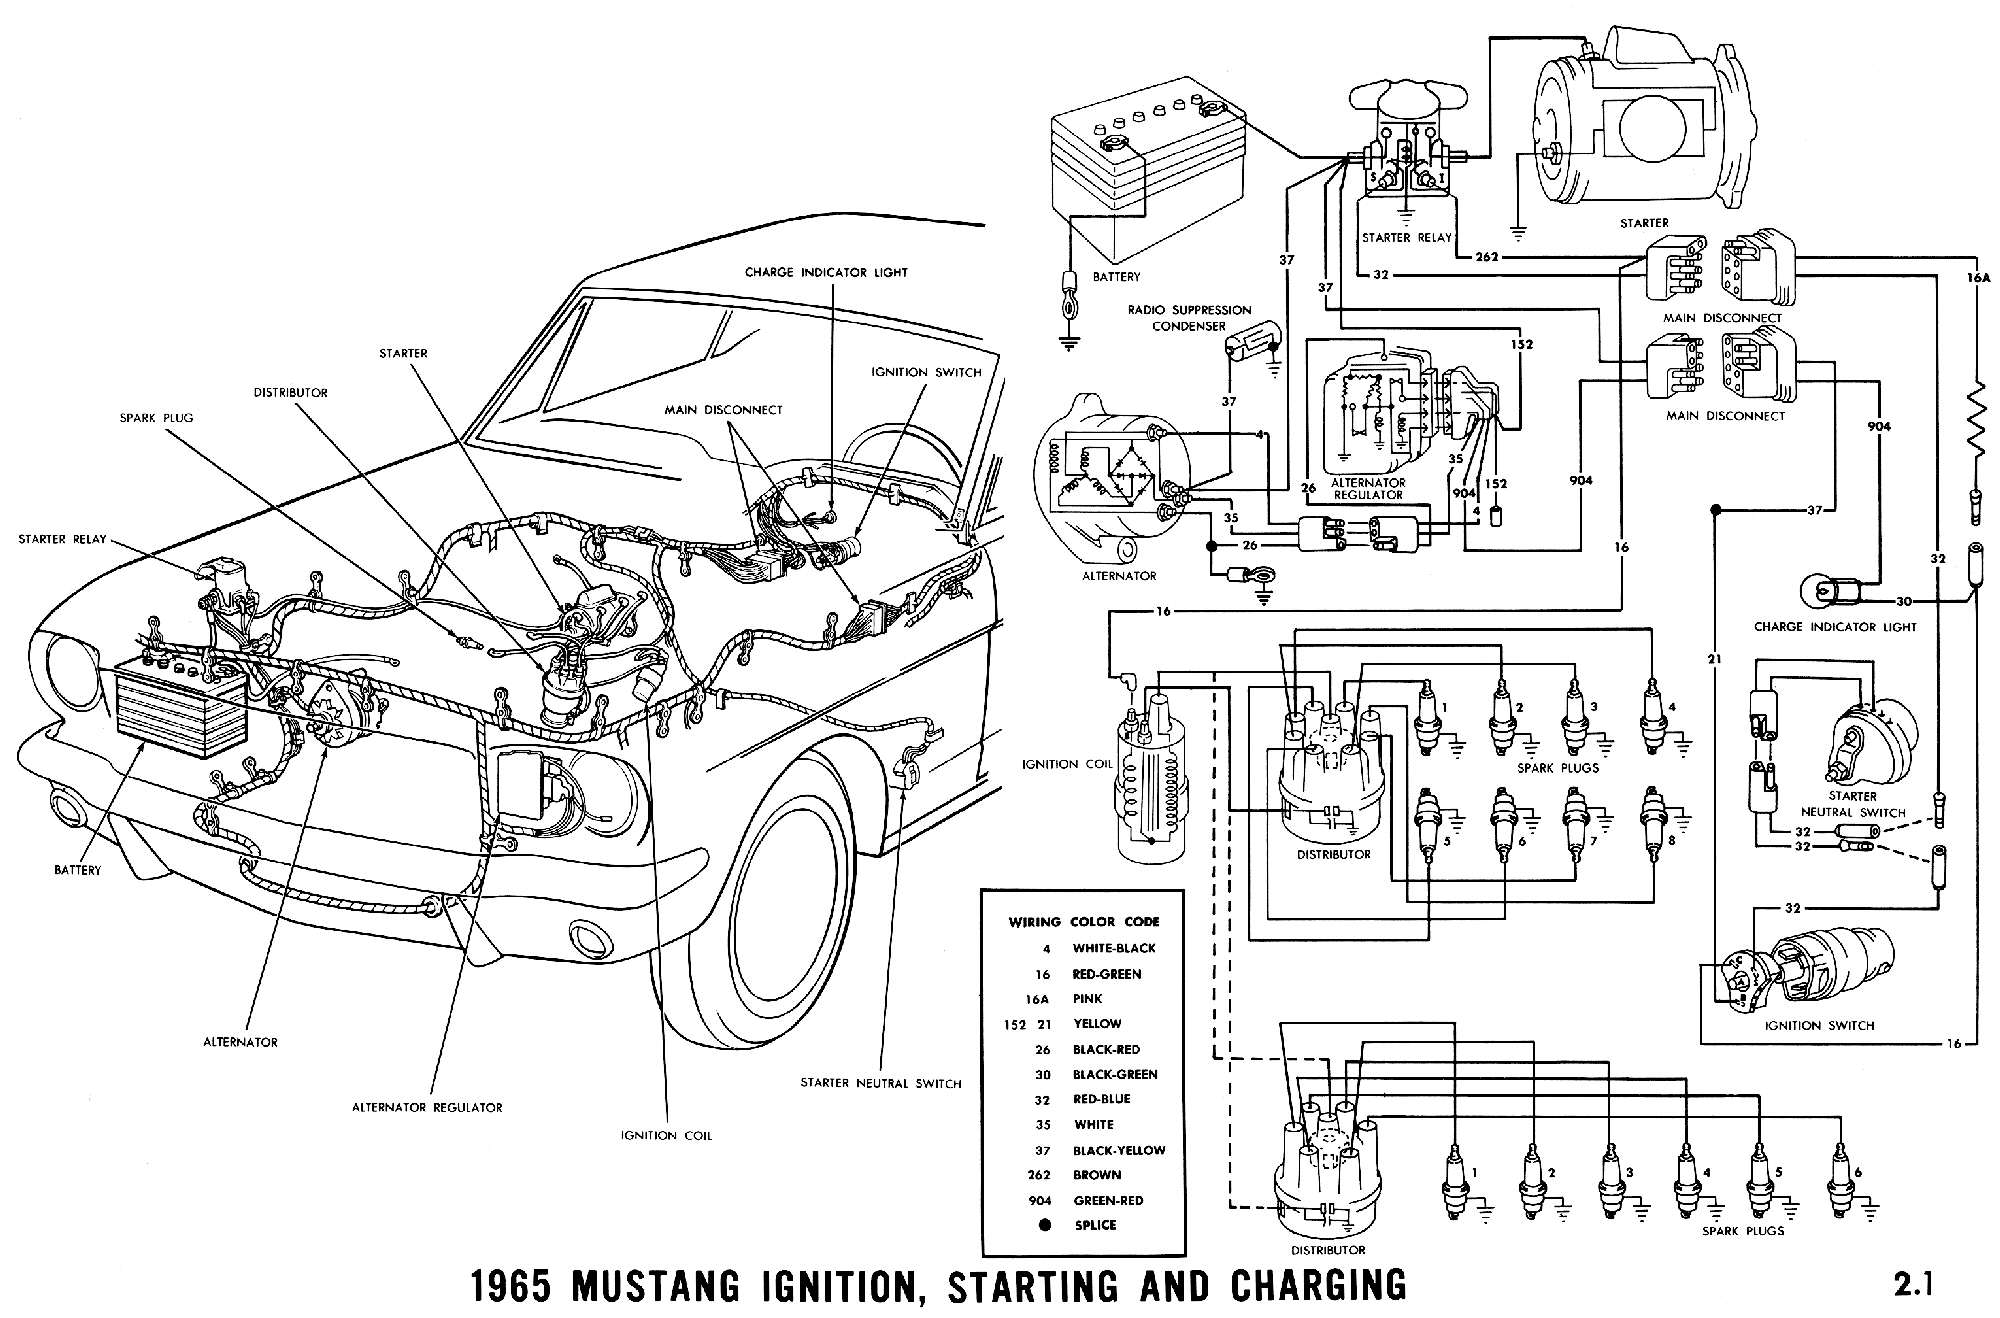 1965 Mustang Wiring Diagrams on 1969 Dodge Charger Wiring Diagram